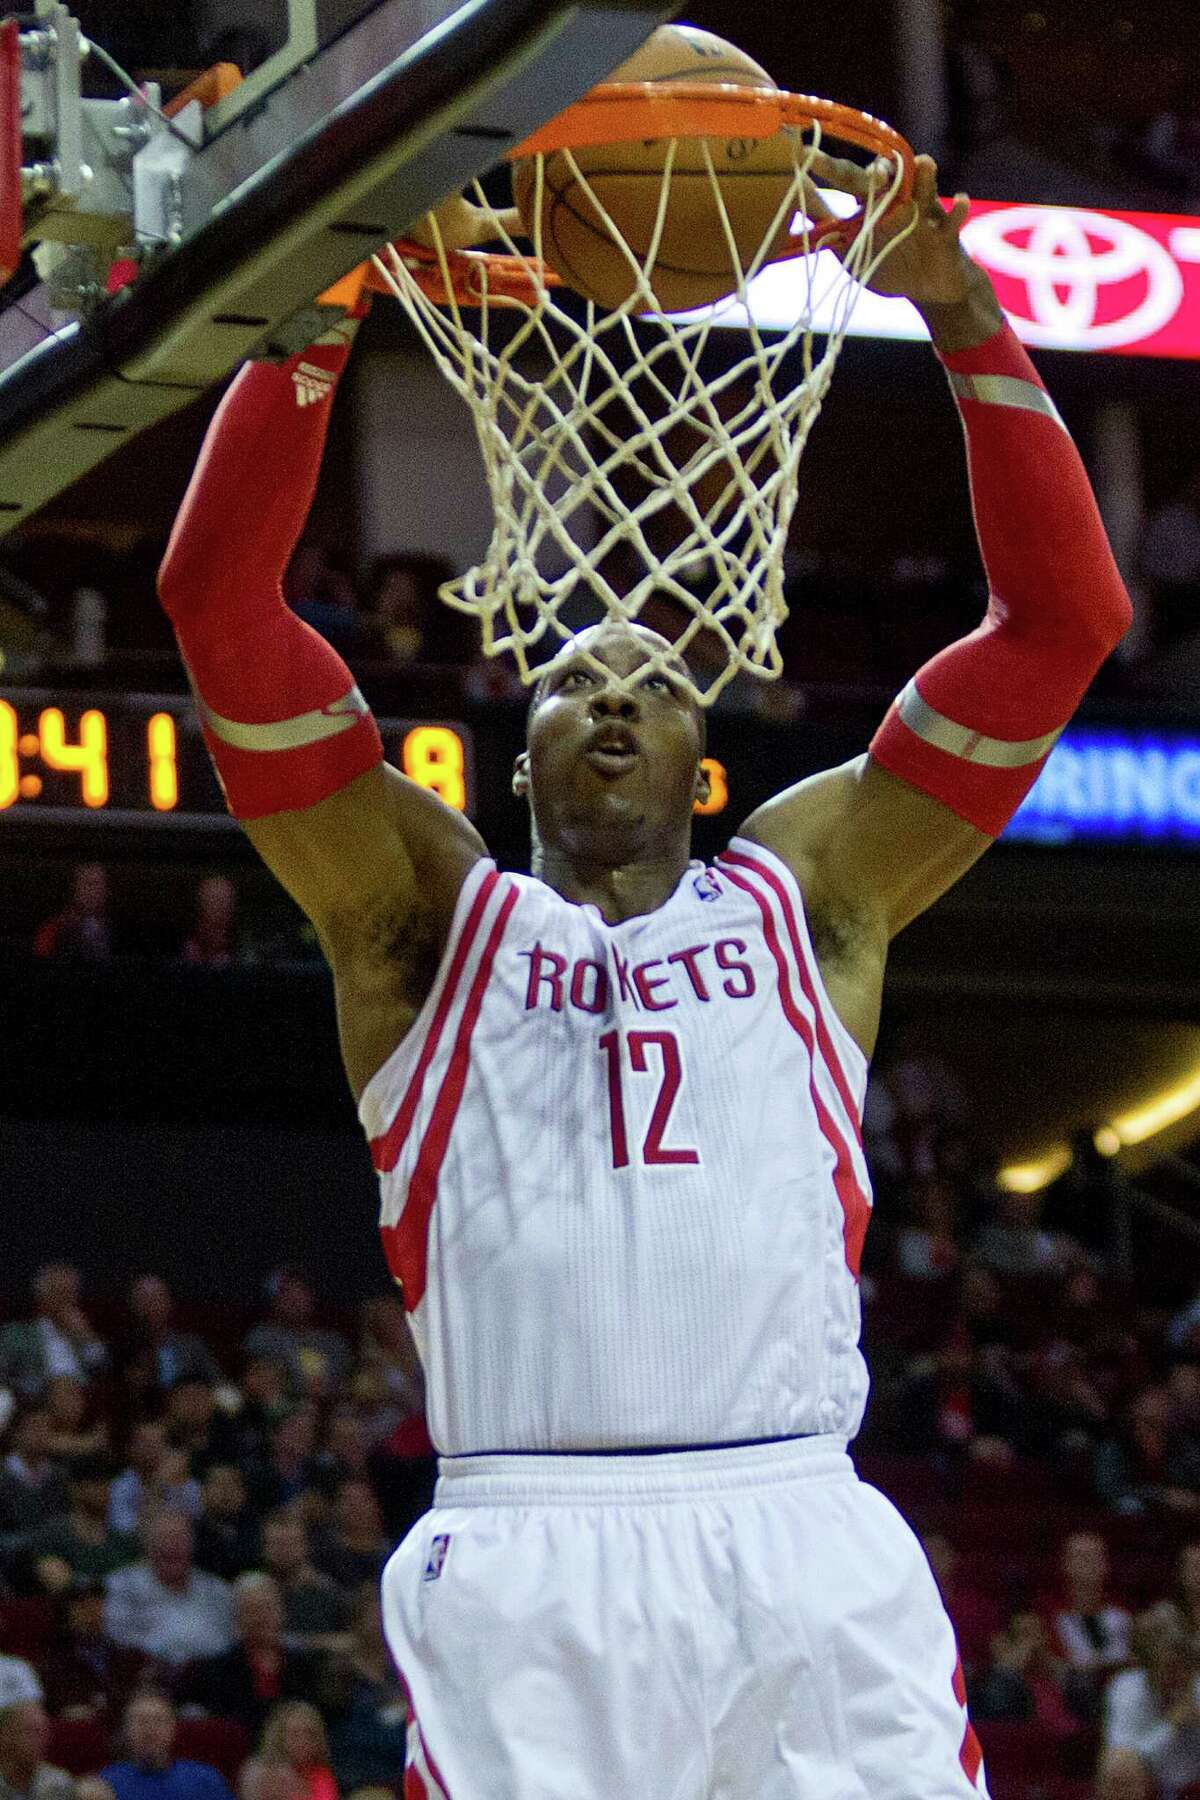 Houston Rockets power forward Dwight Howard (12) scores early on the game against the Chicago Bulls, Wednesday, Dec. 18, 2013, in Houston at the Toyota Center. Houston beat Chicago 109-94. ( Marie D. De Jesus / Houston Chronicle )